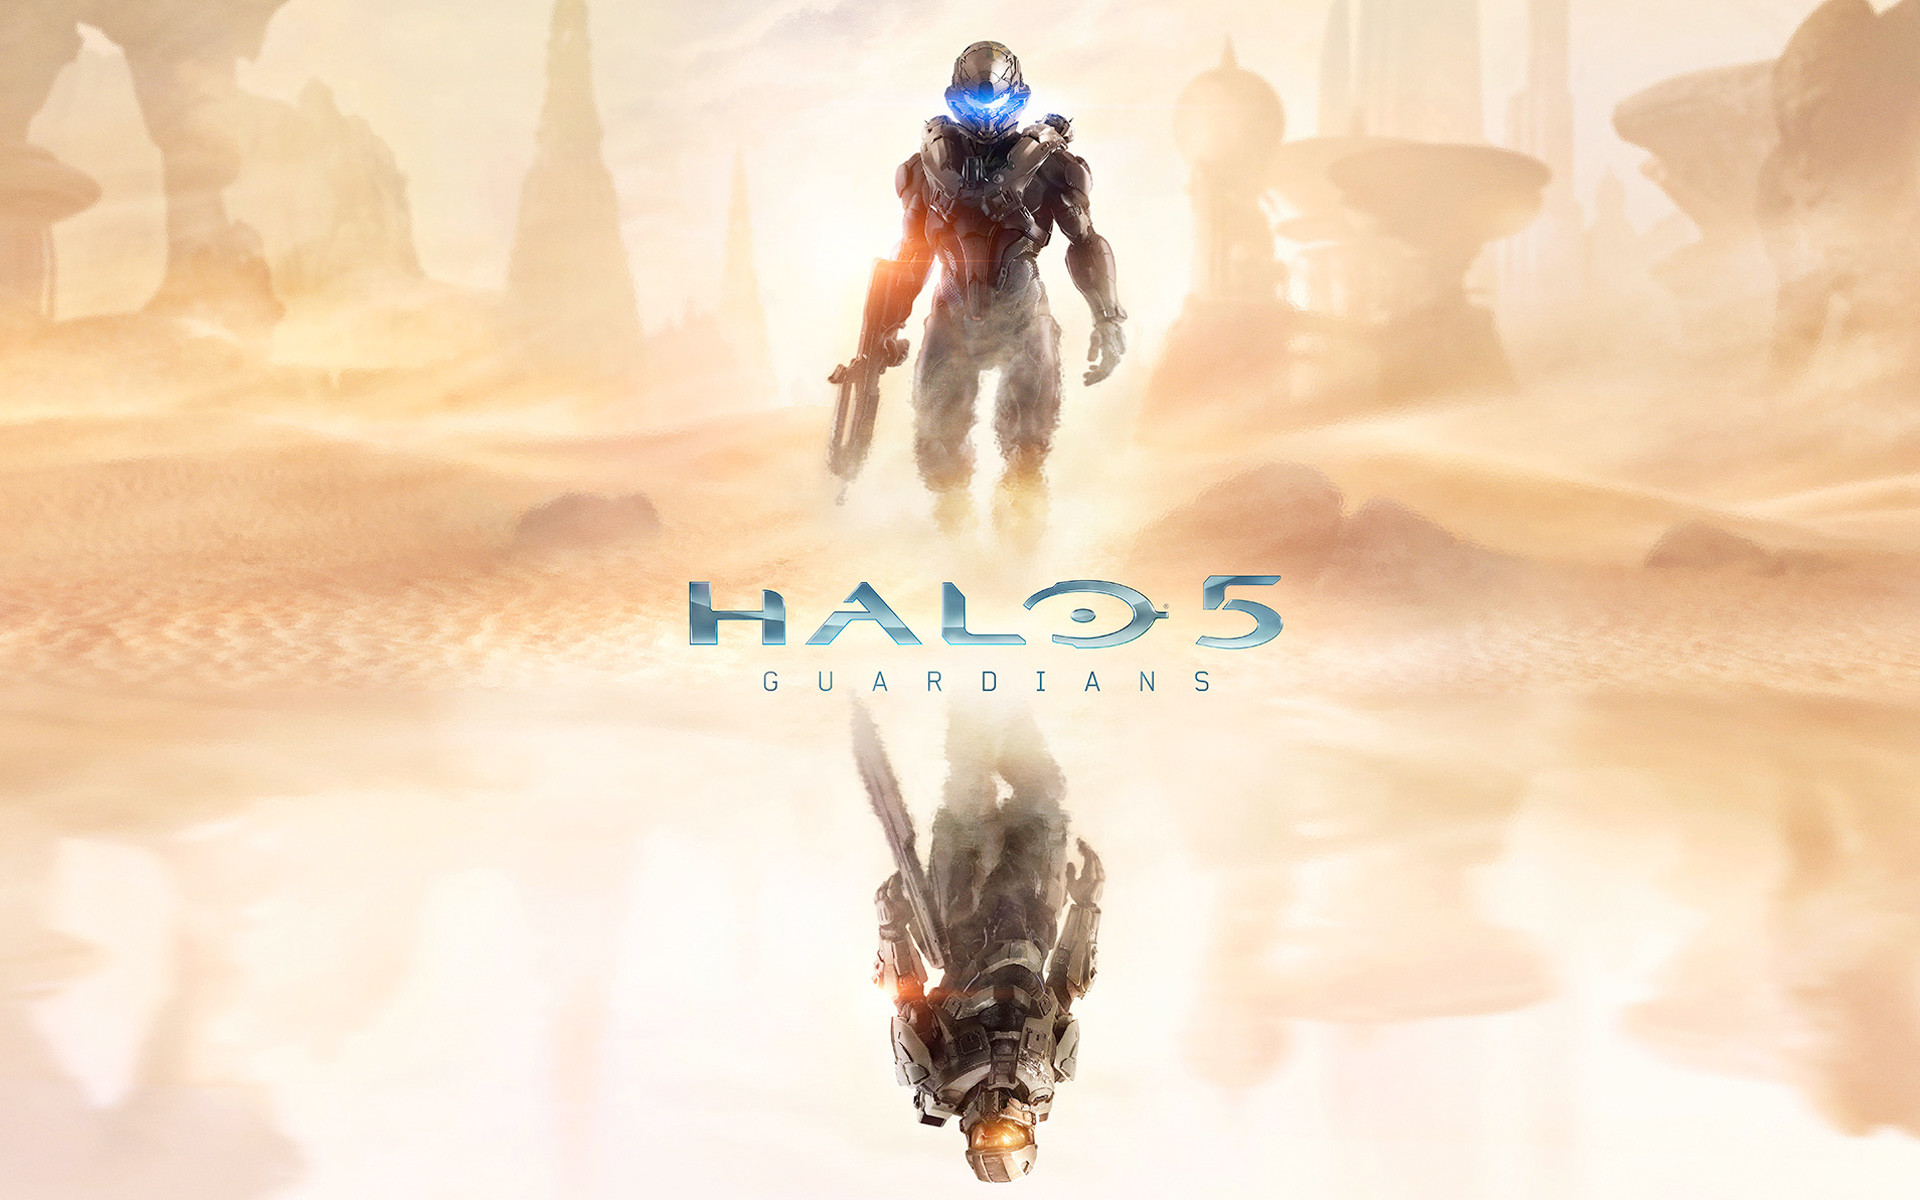 1920x1200 Halo 5 Guardians 2015 Game